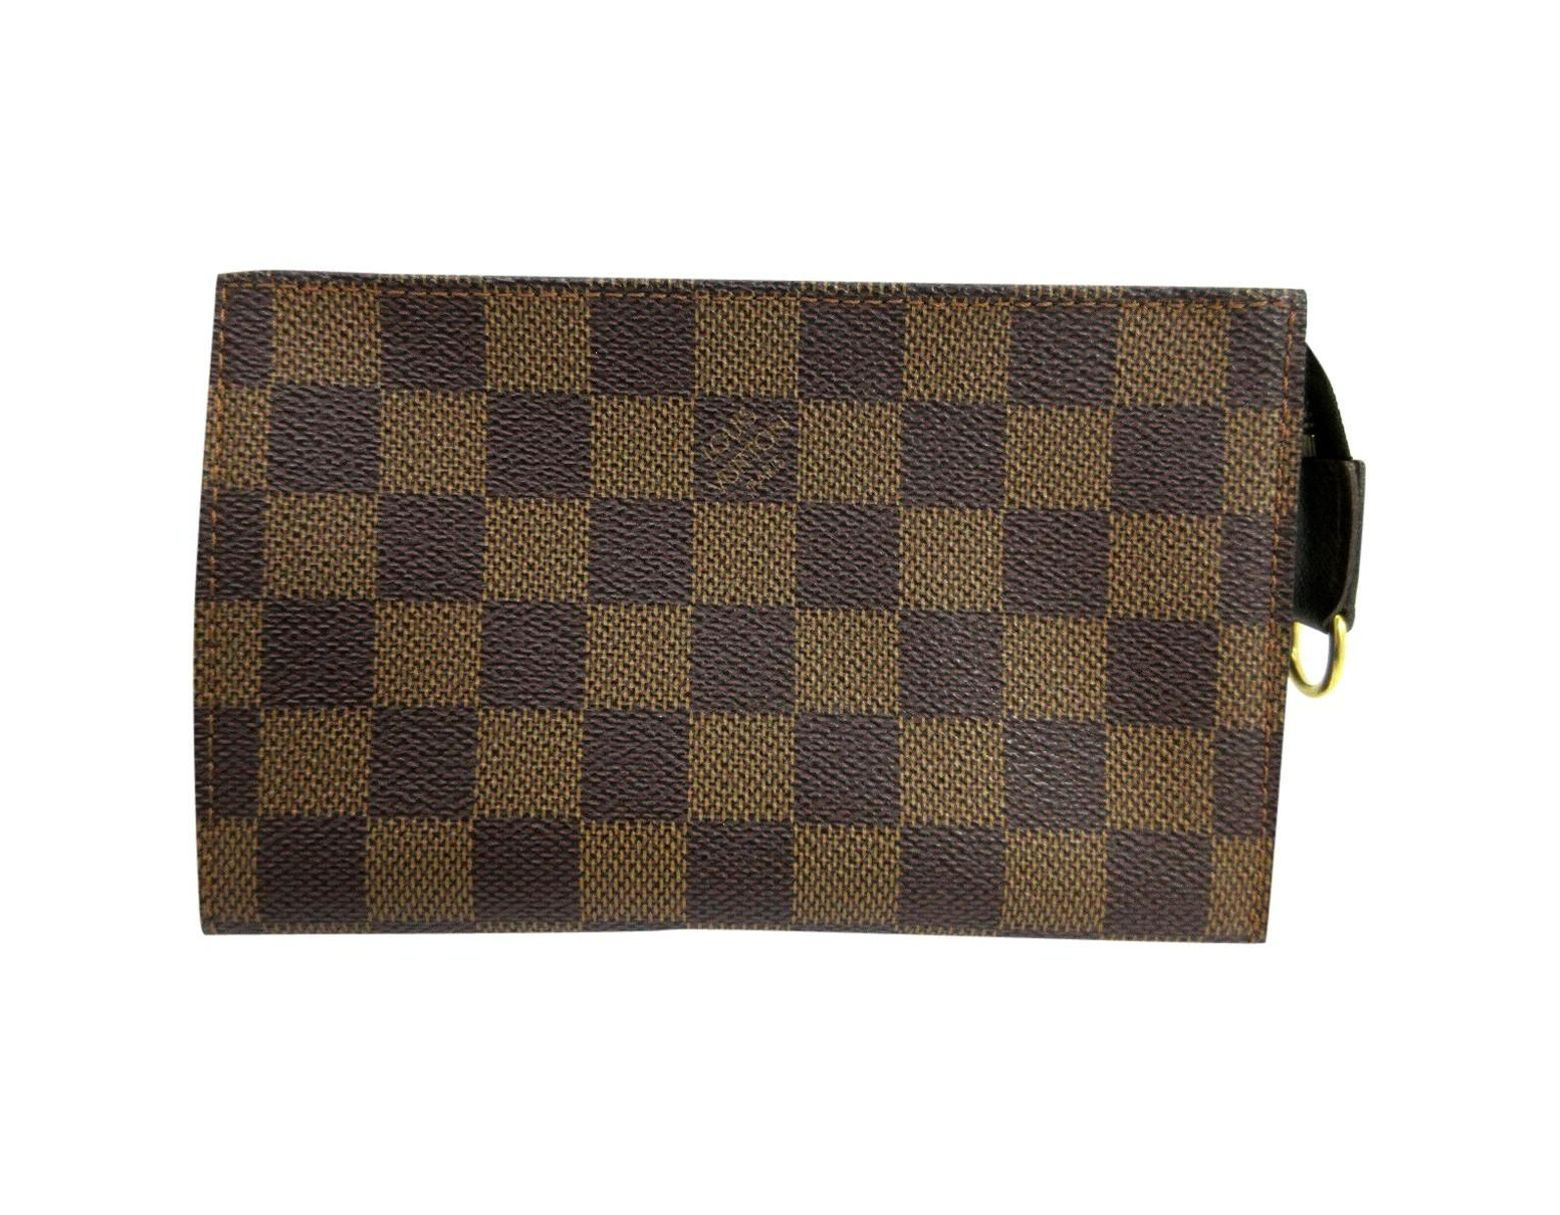 8d79a576e Women's Brown Other Cloth Clutch Bag. Track. $430. From Vestiaire Collective